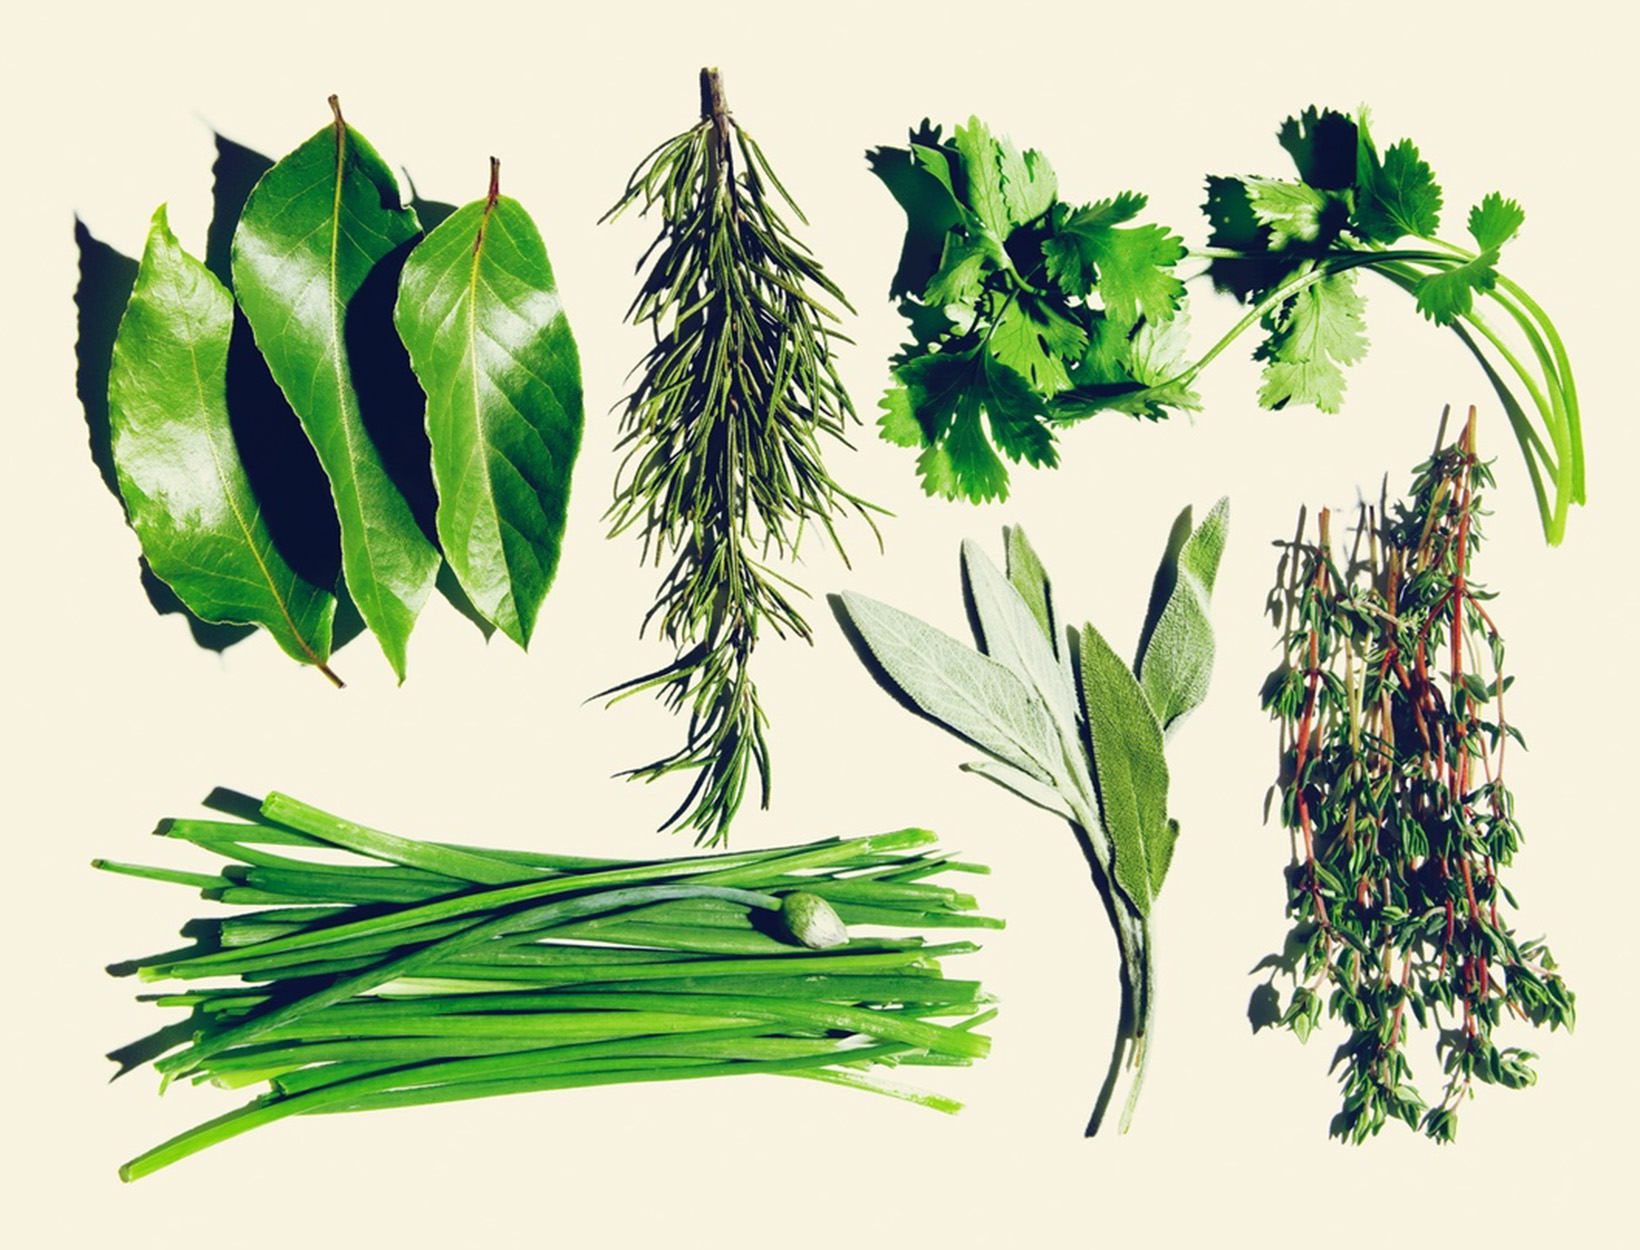 The Ultimate Spring Project: An Easy Herb Garden | Goop